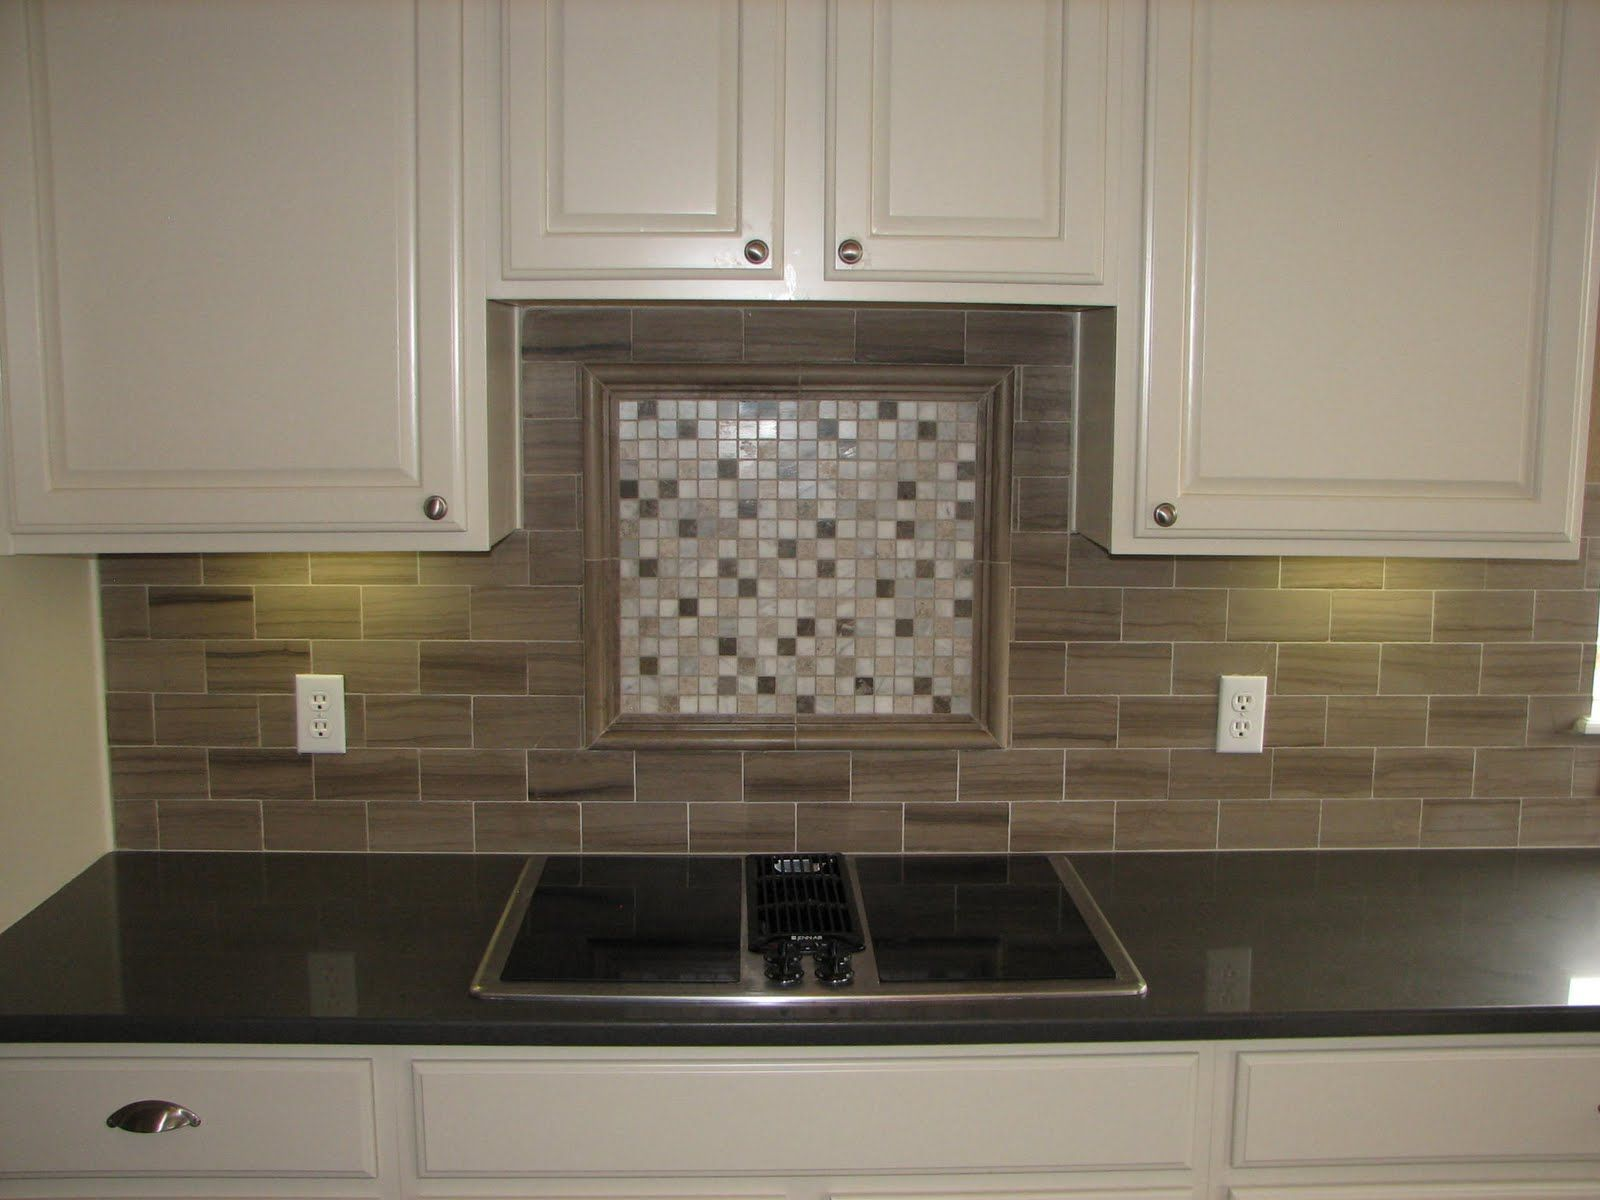 Tile backsplash with black cuntertop ideas tile design backsplash photos backsplash design Kitchen design of tiles